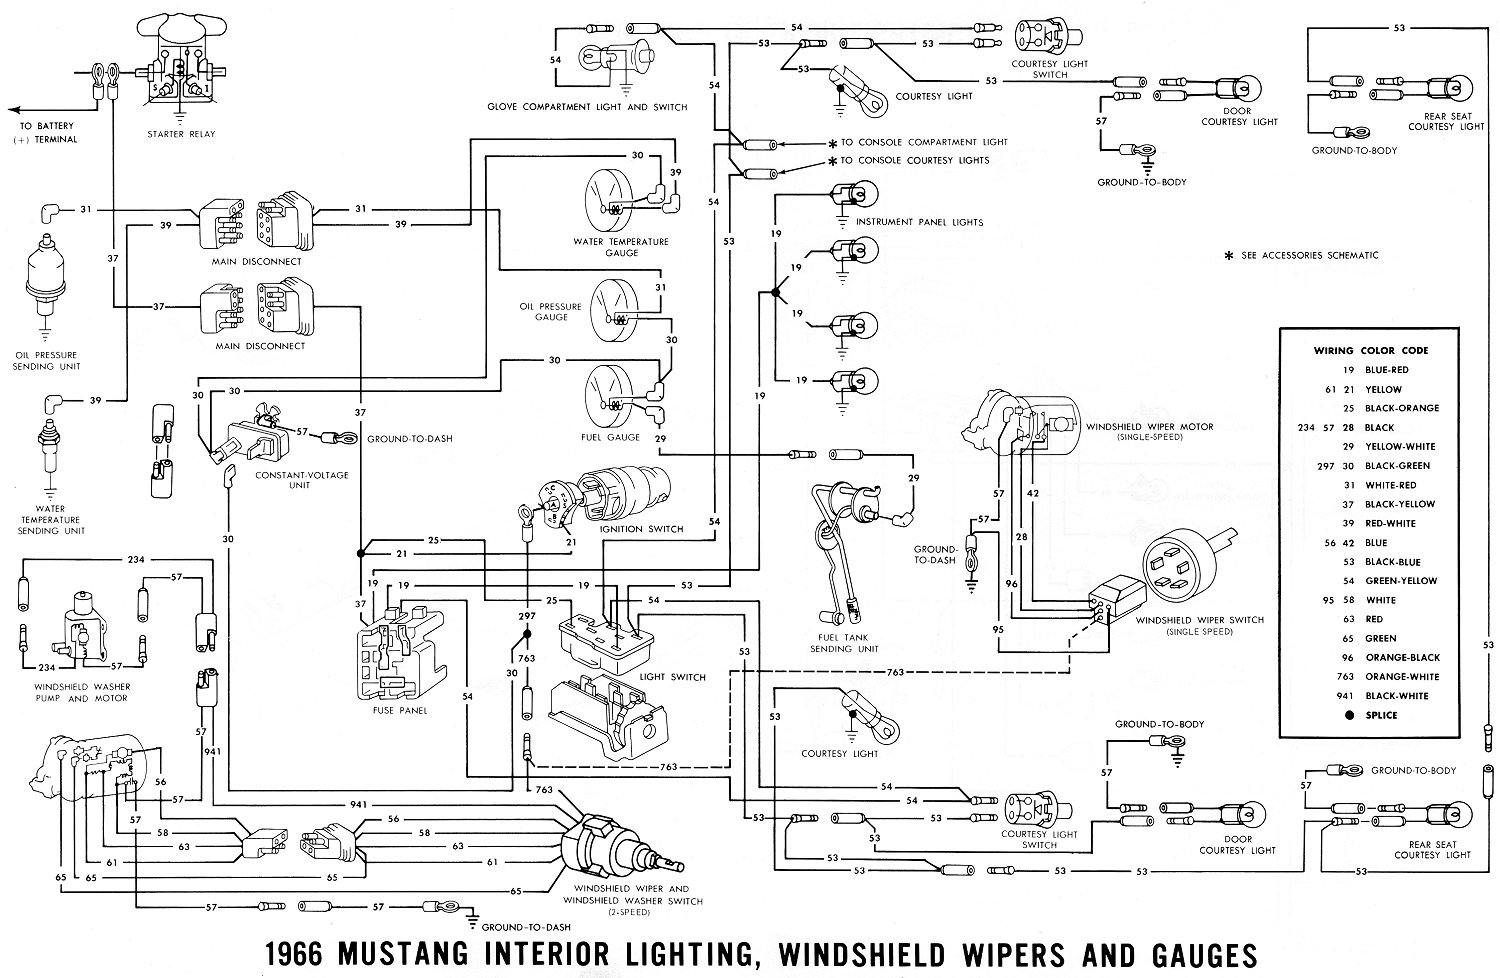 66inter1 1966 mustang wiring diagrams average joe restoration 1965 mustang alternator wiring diagram at bakdesigns.co